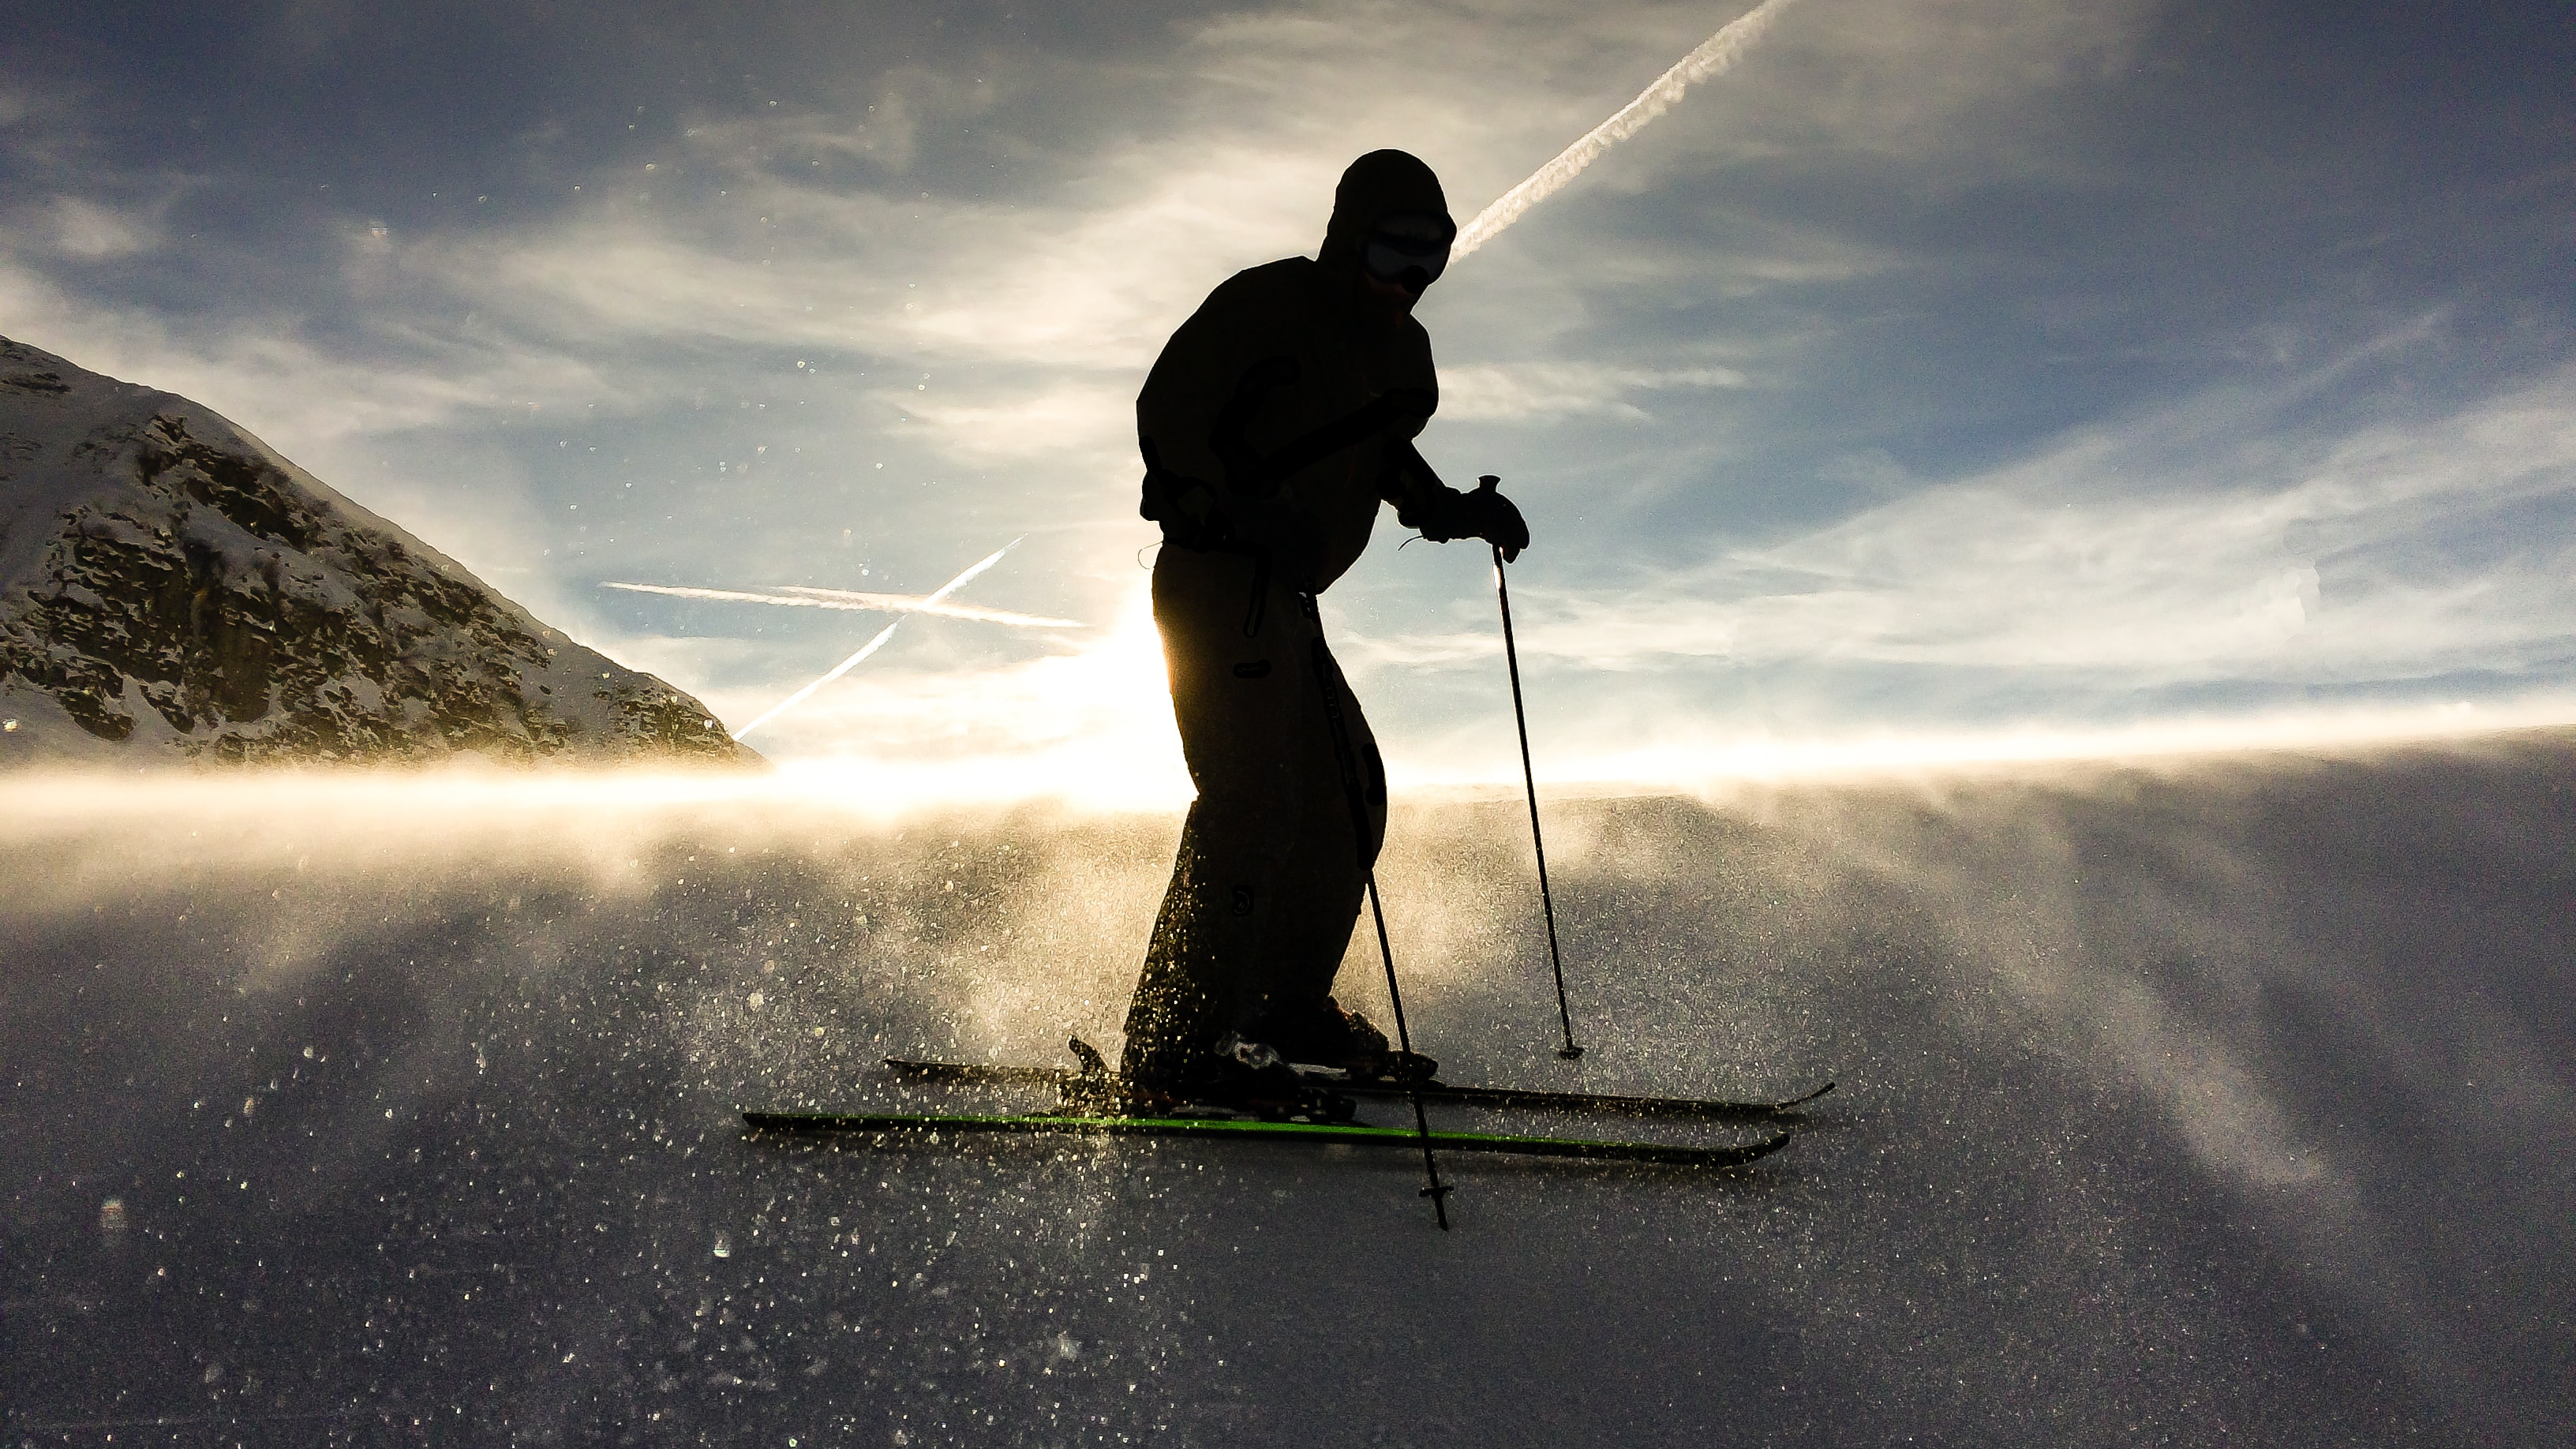 A man skiing through snow while the sun breaks free from clouds